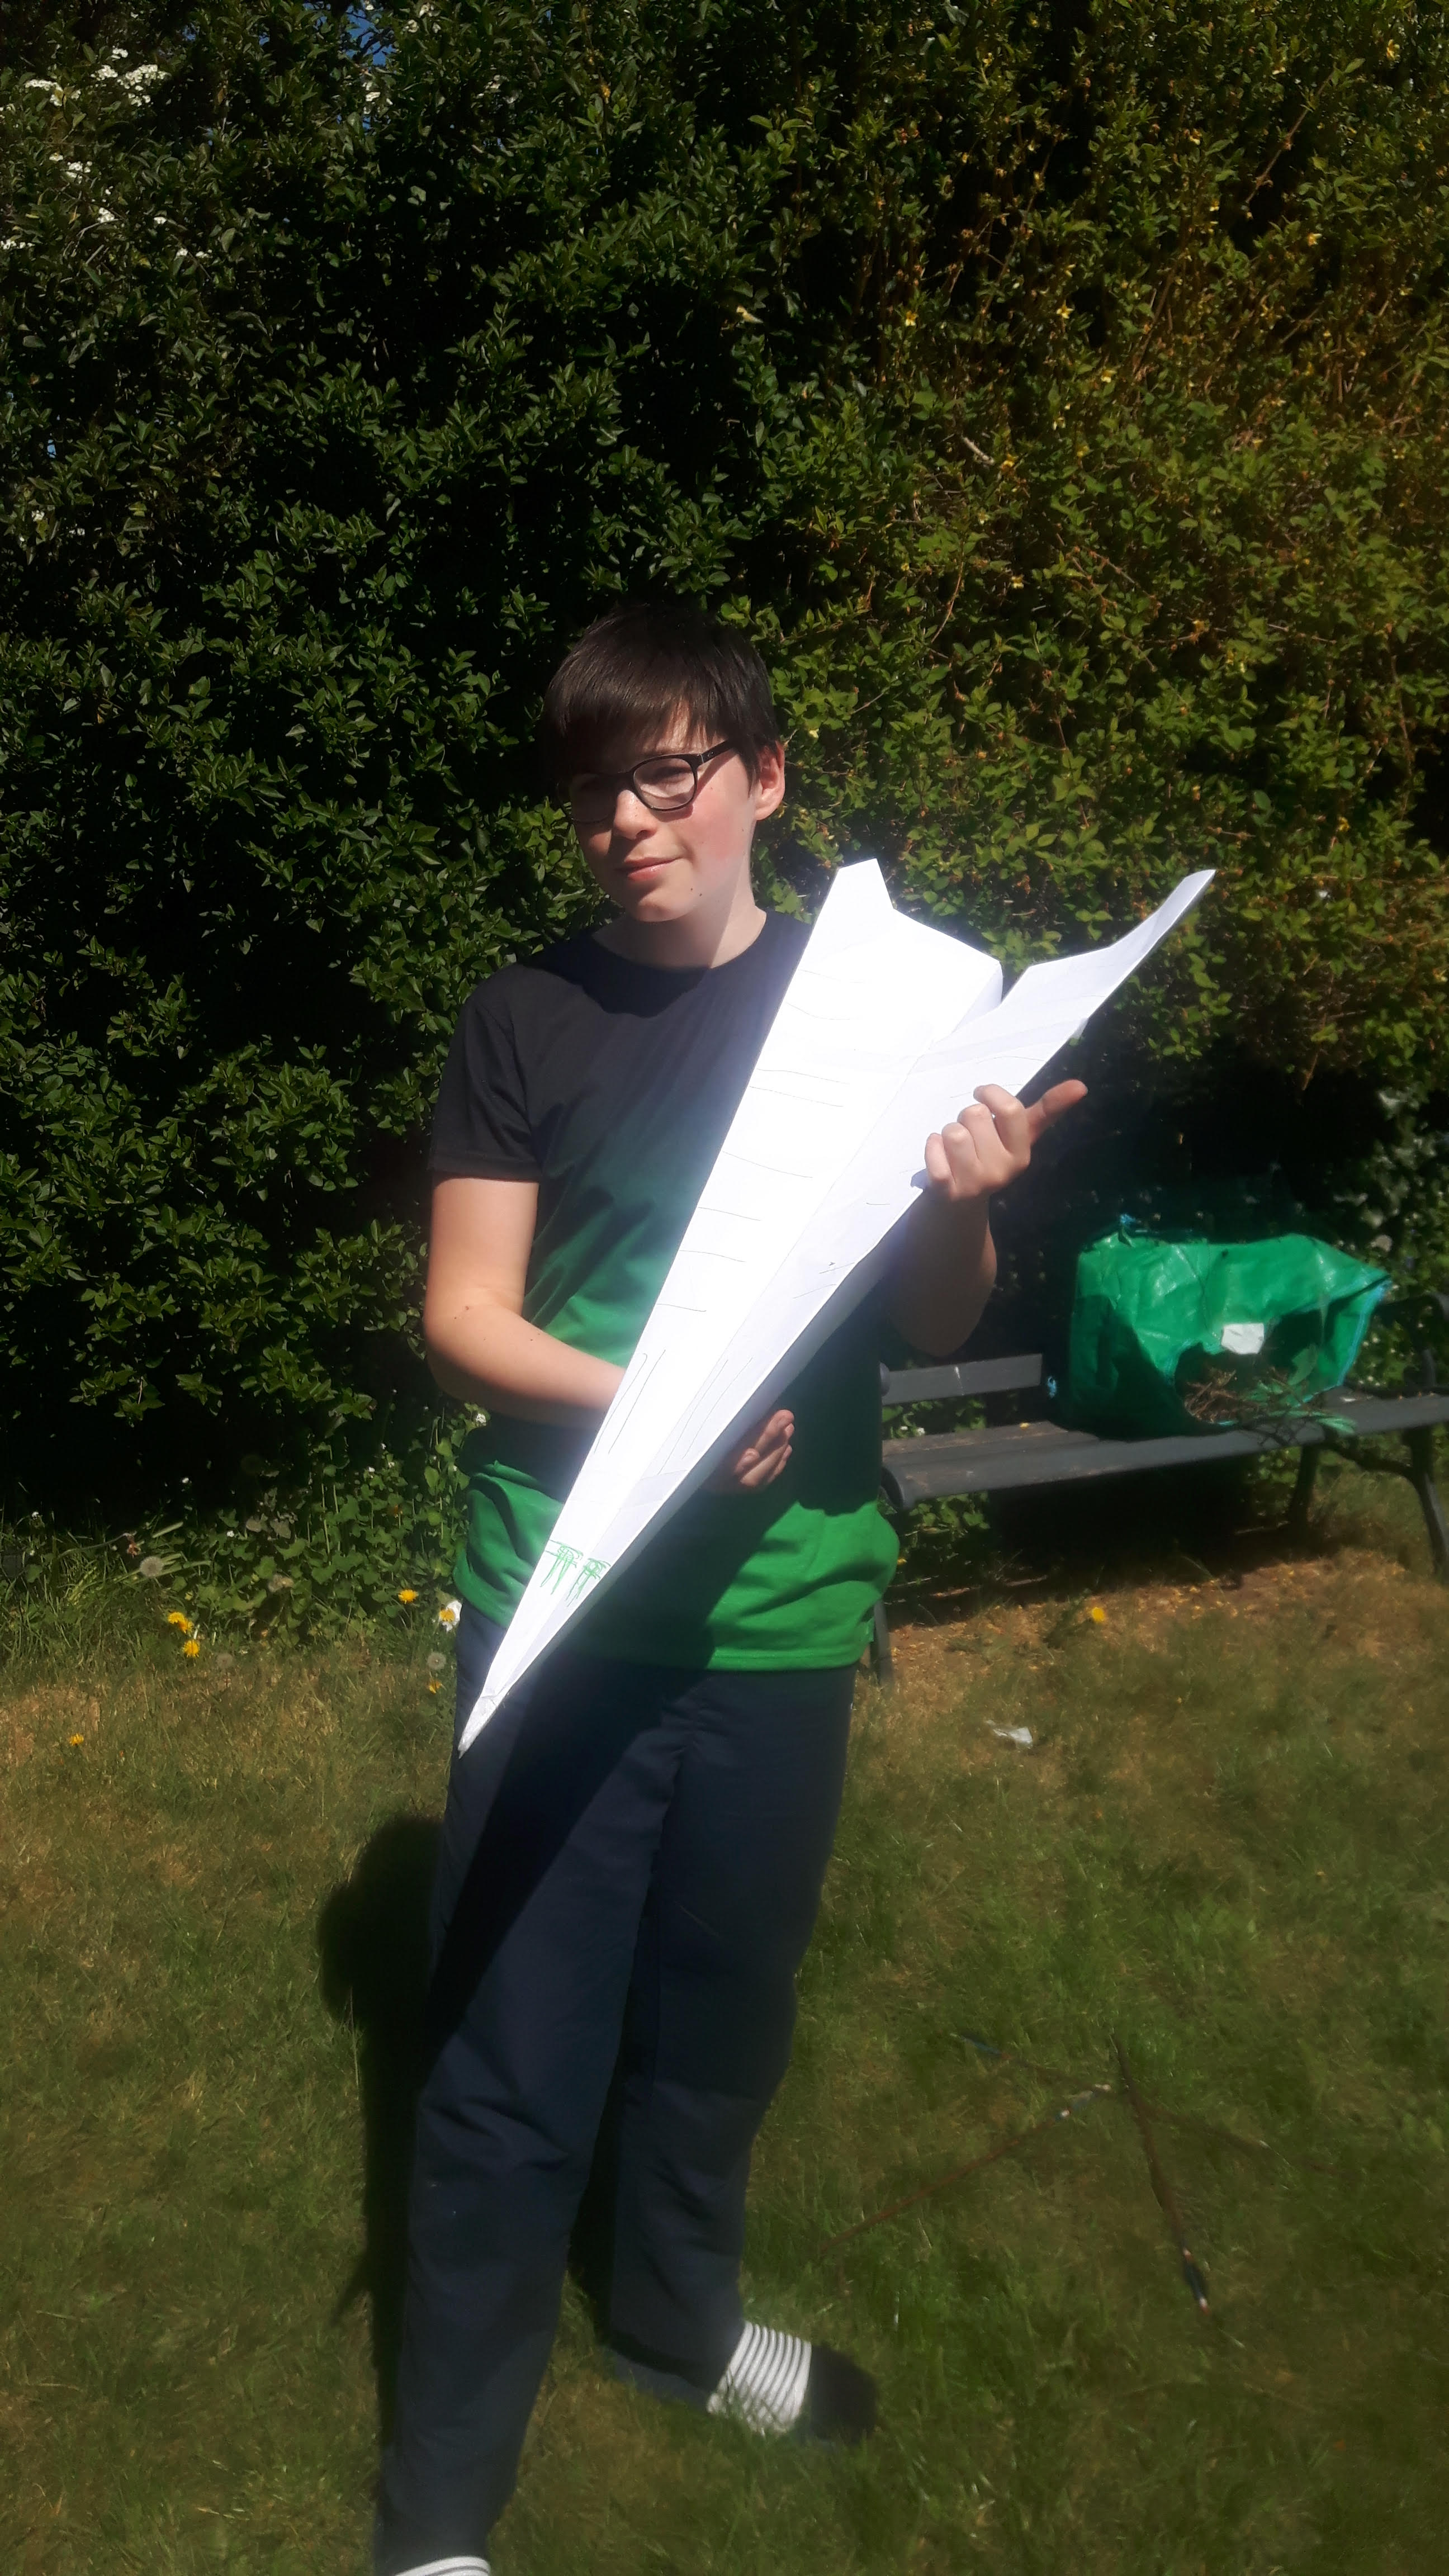 06/05/20 - Science Paper Aeroplane Project